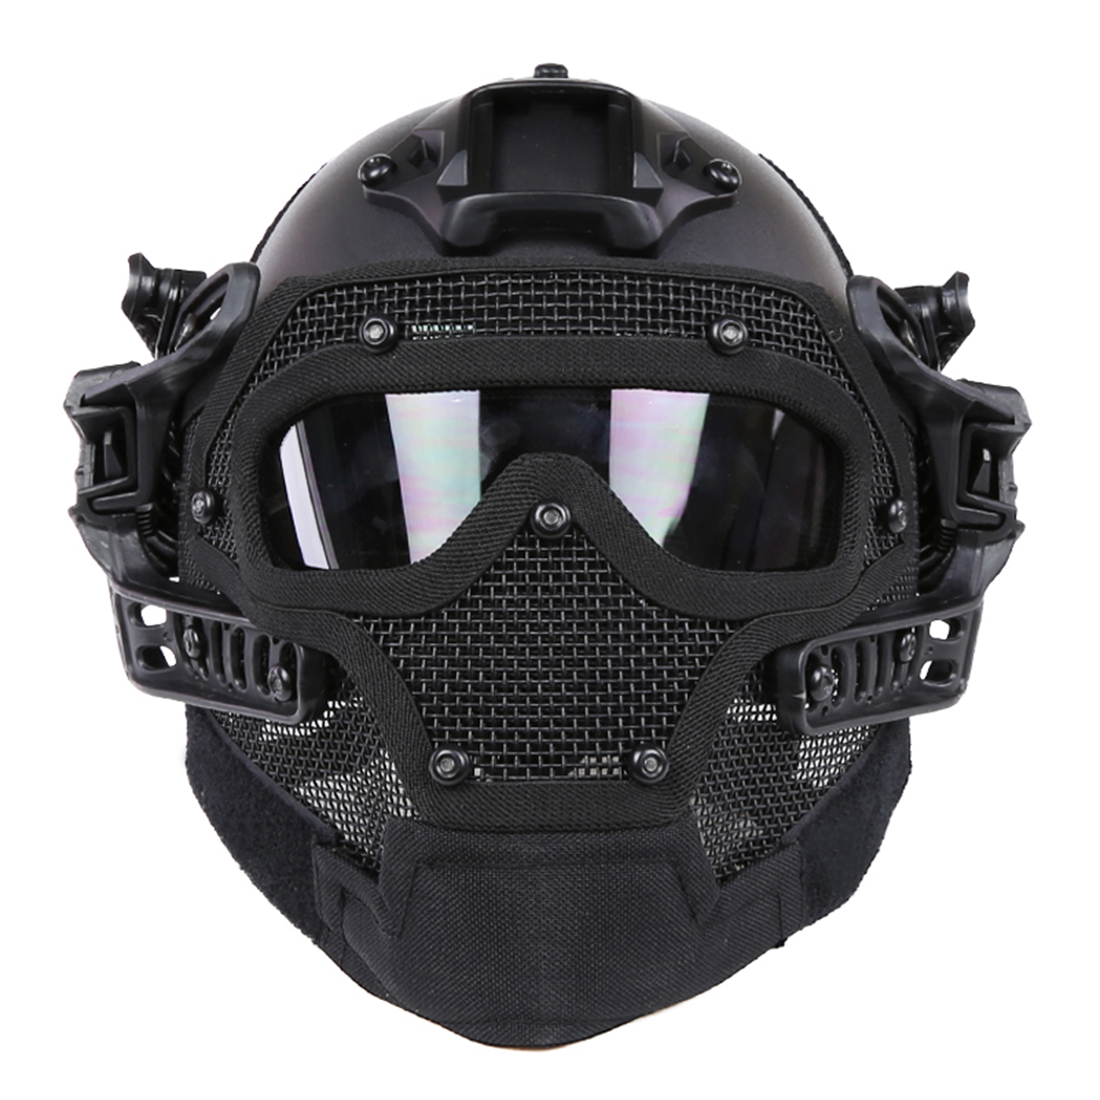 купить NFSTRIKE Steel Wire Protective FAST Helmet Suit for Nerf for Airsoft Tactics Military Helmet Outdoor Activity High Quality Black по цене 4754.39 рублей